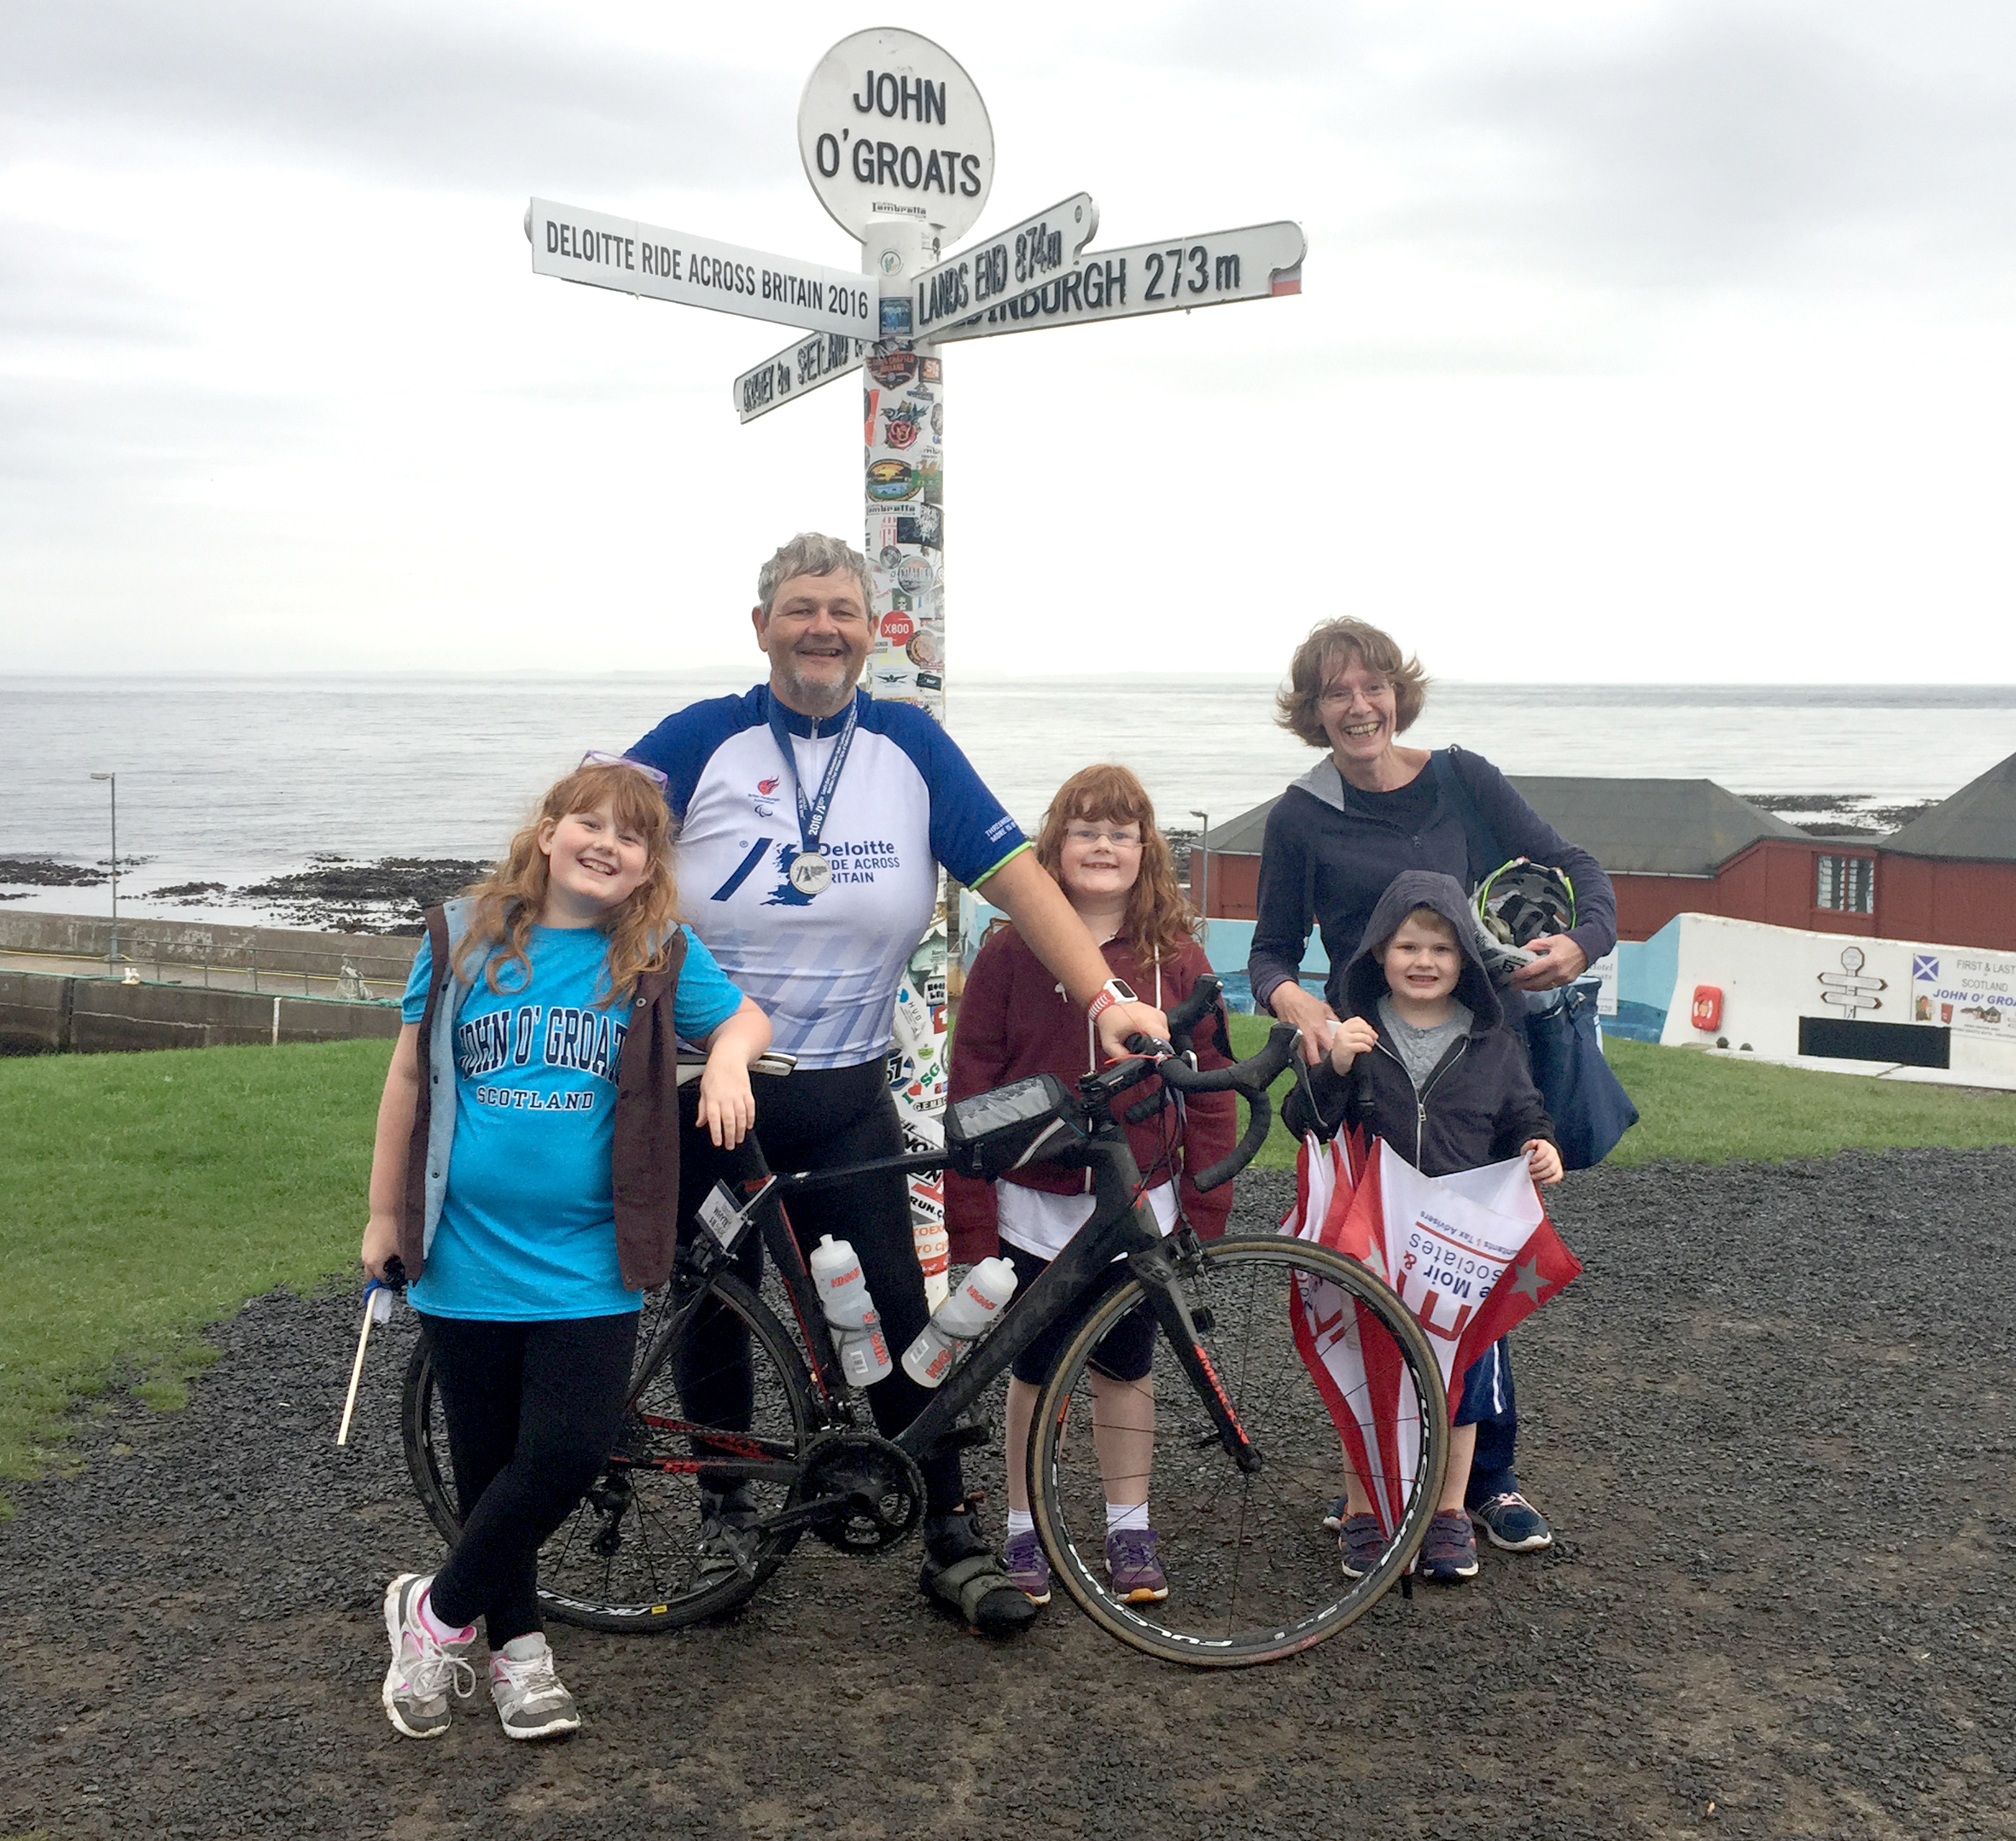 Iain Whyte with wife Val, and children Morag, Heather and Angus.